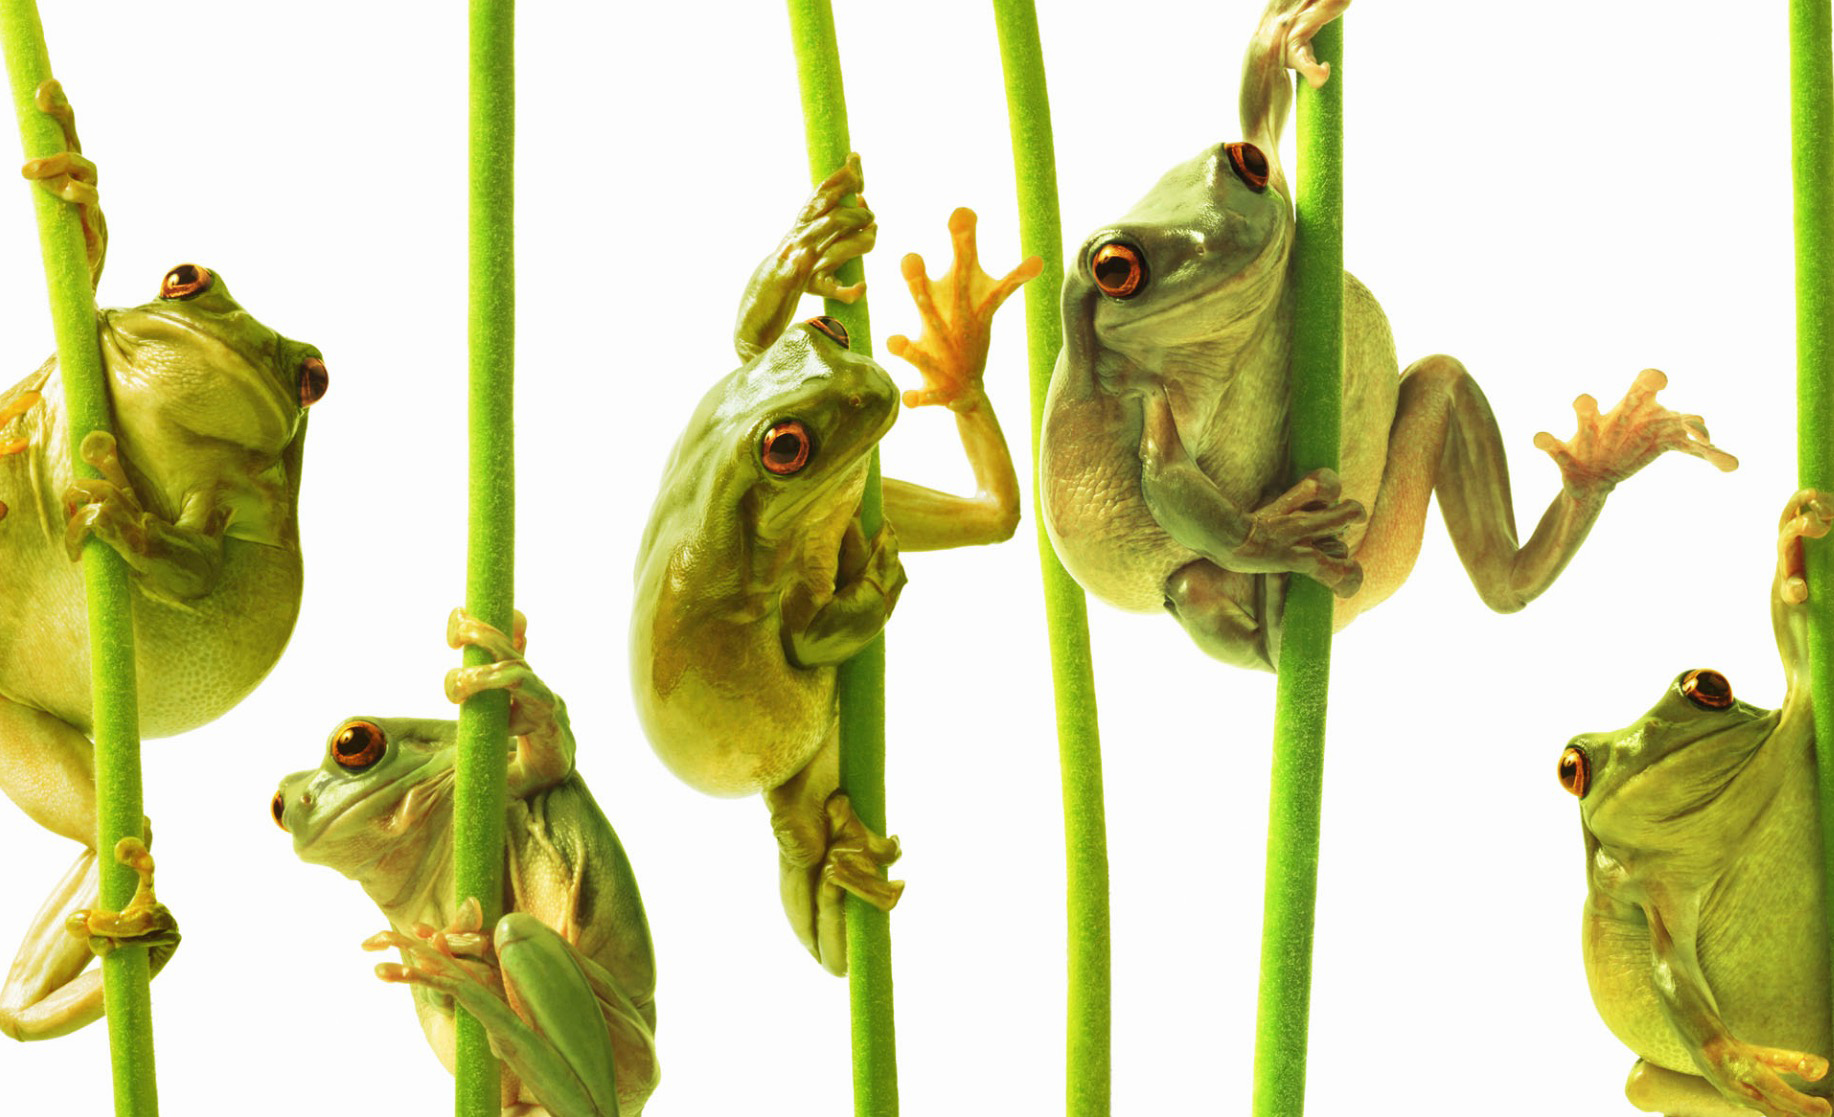 Whites tree frogs climbing plant stems, close-up (Digital Composite) Whites tree frog (Litoria caerulea) Copyright Gandee Vasan